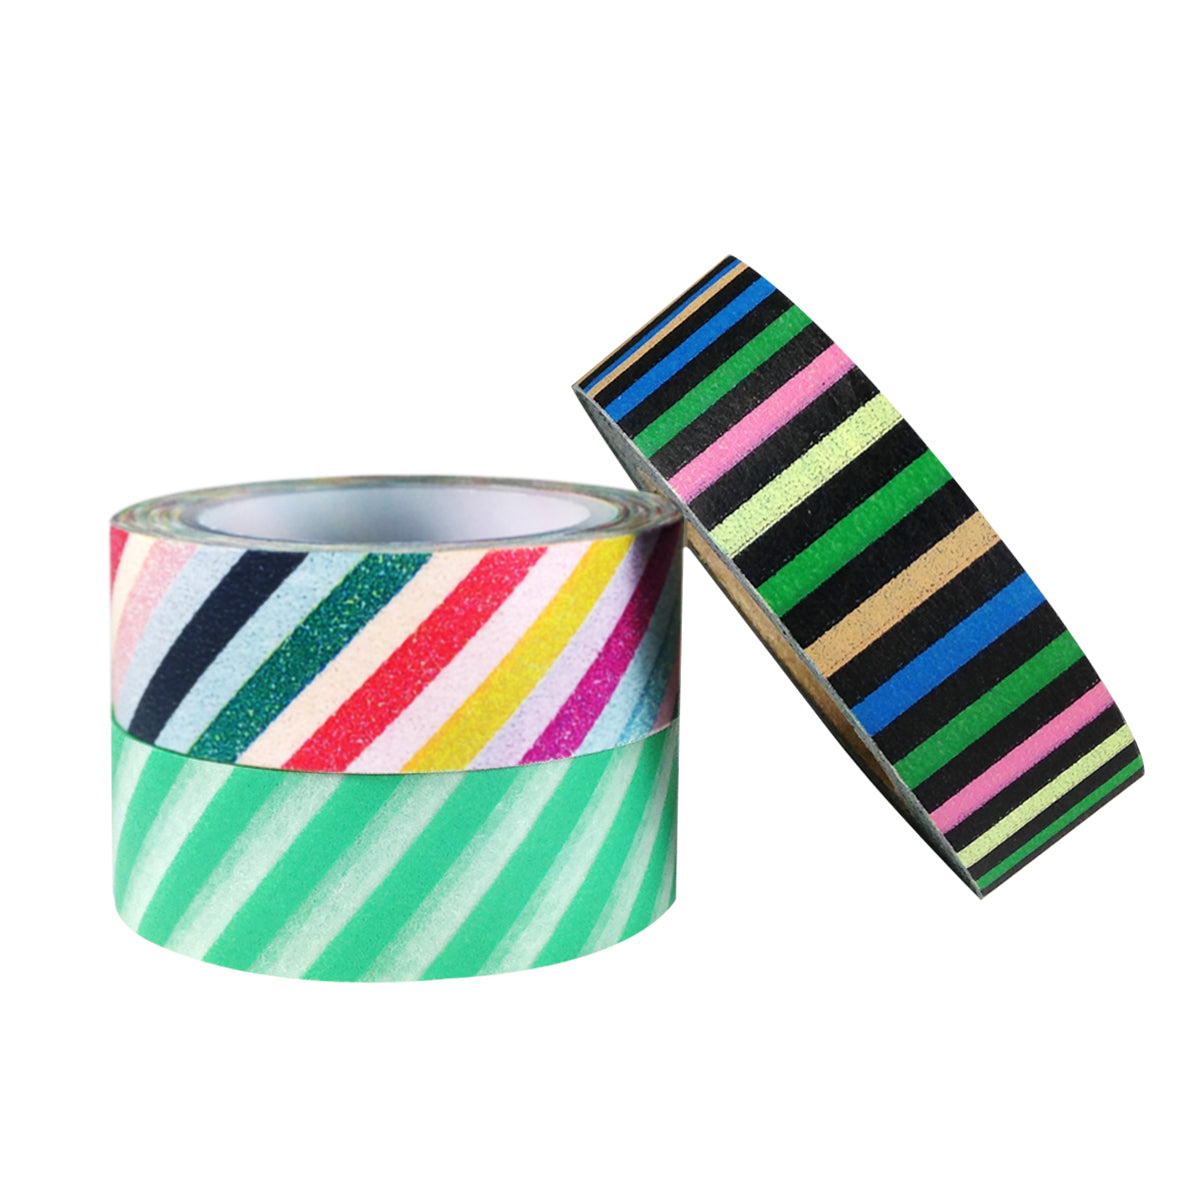 Wrapables Retro Stripes Japanese Washi Masking Tape (set of 3)